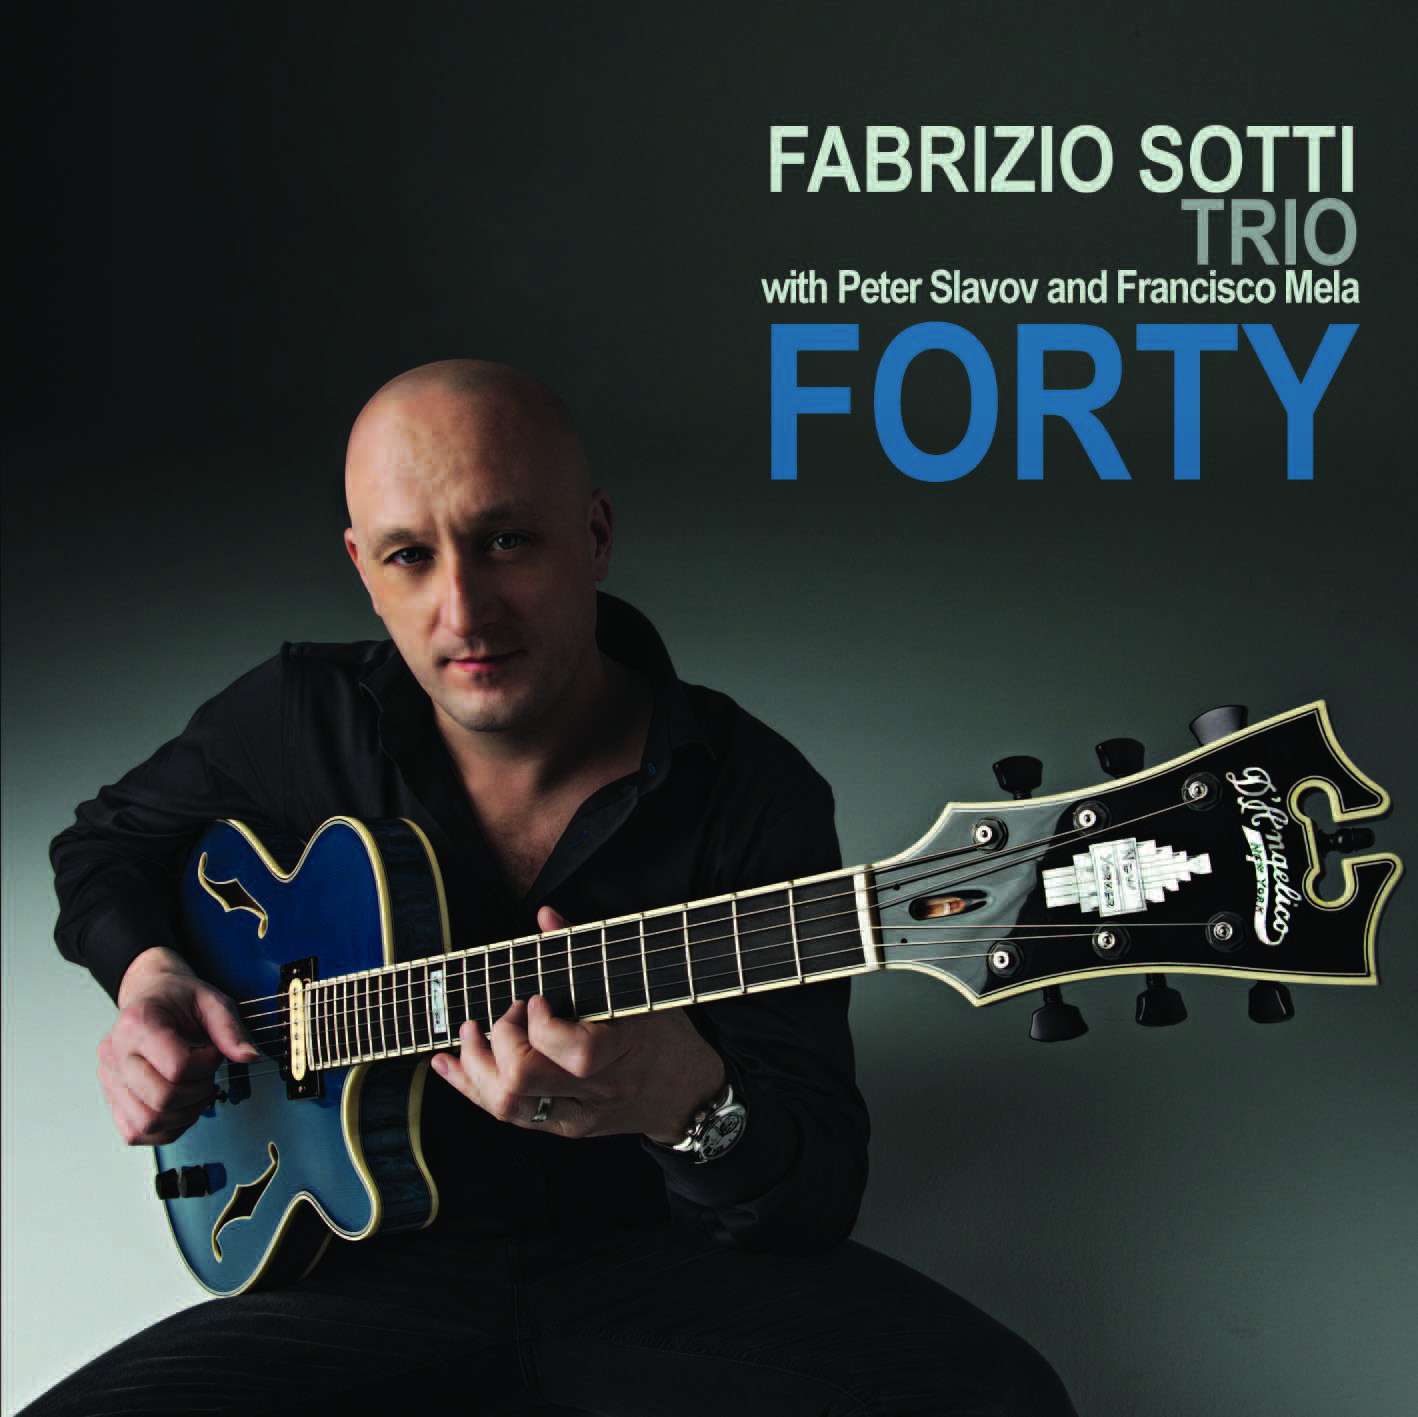 Celebrated guitarist & composer FABRIZIO SOTTI announces new album FORTY – 6/10